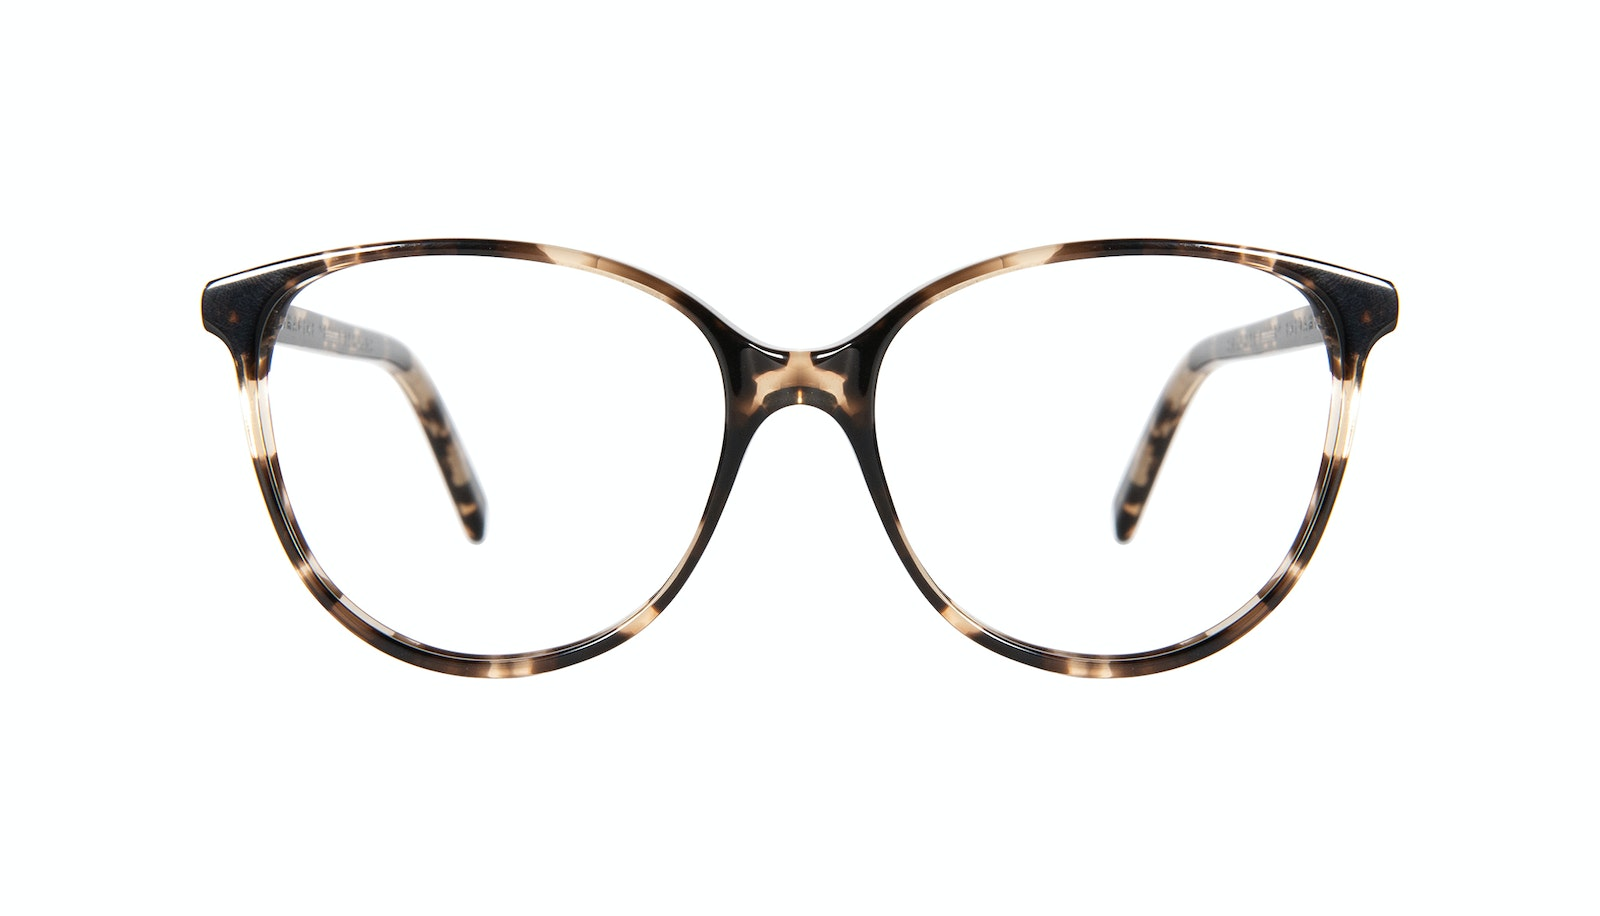 Affordable Fashion Glasses Round Eyeglasses Women Imagine Petite Leopard